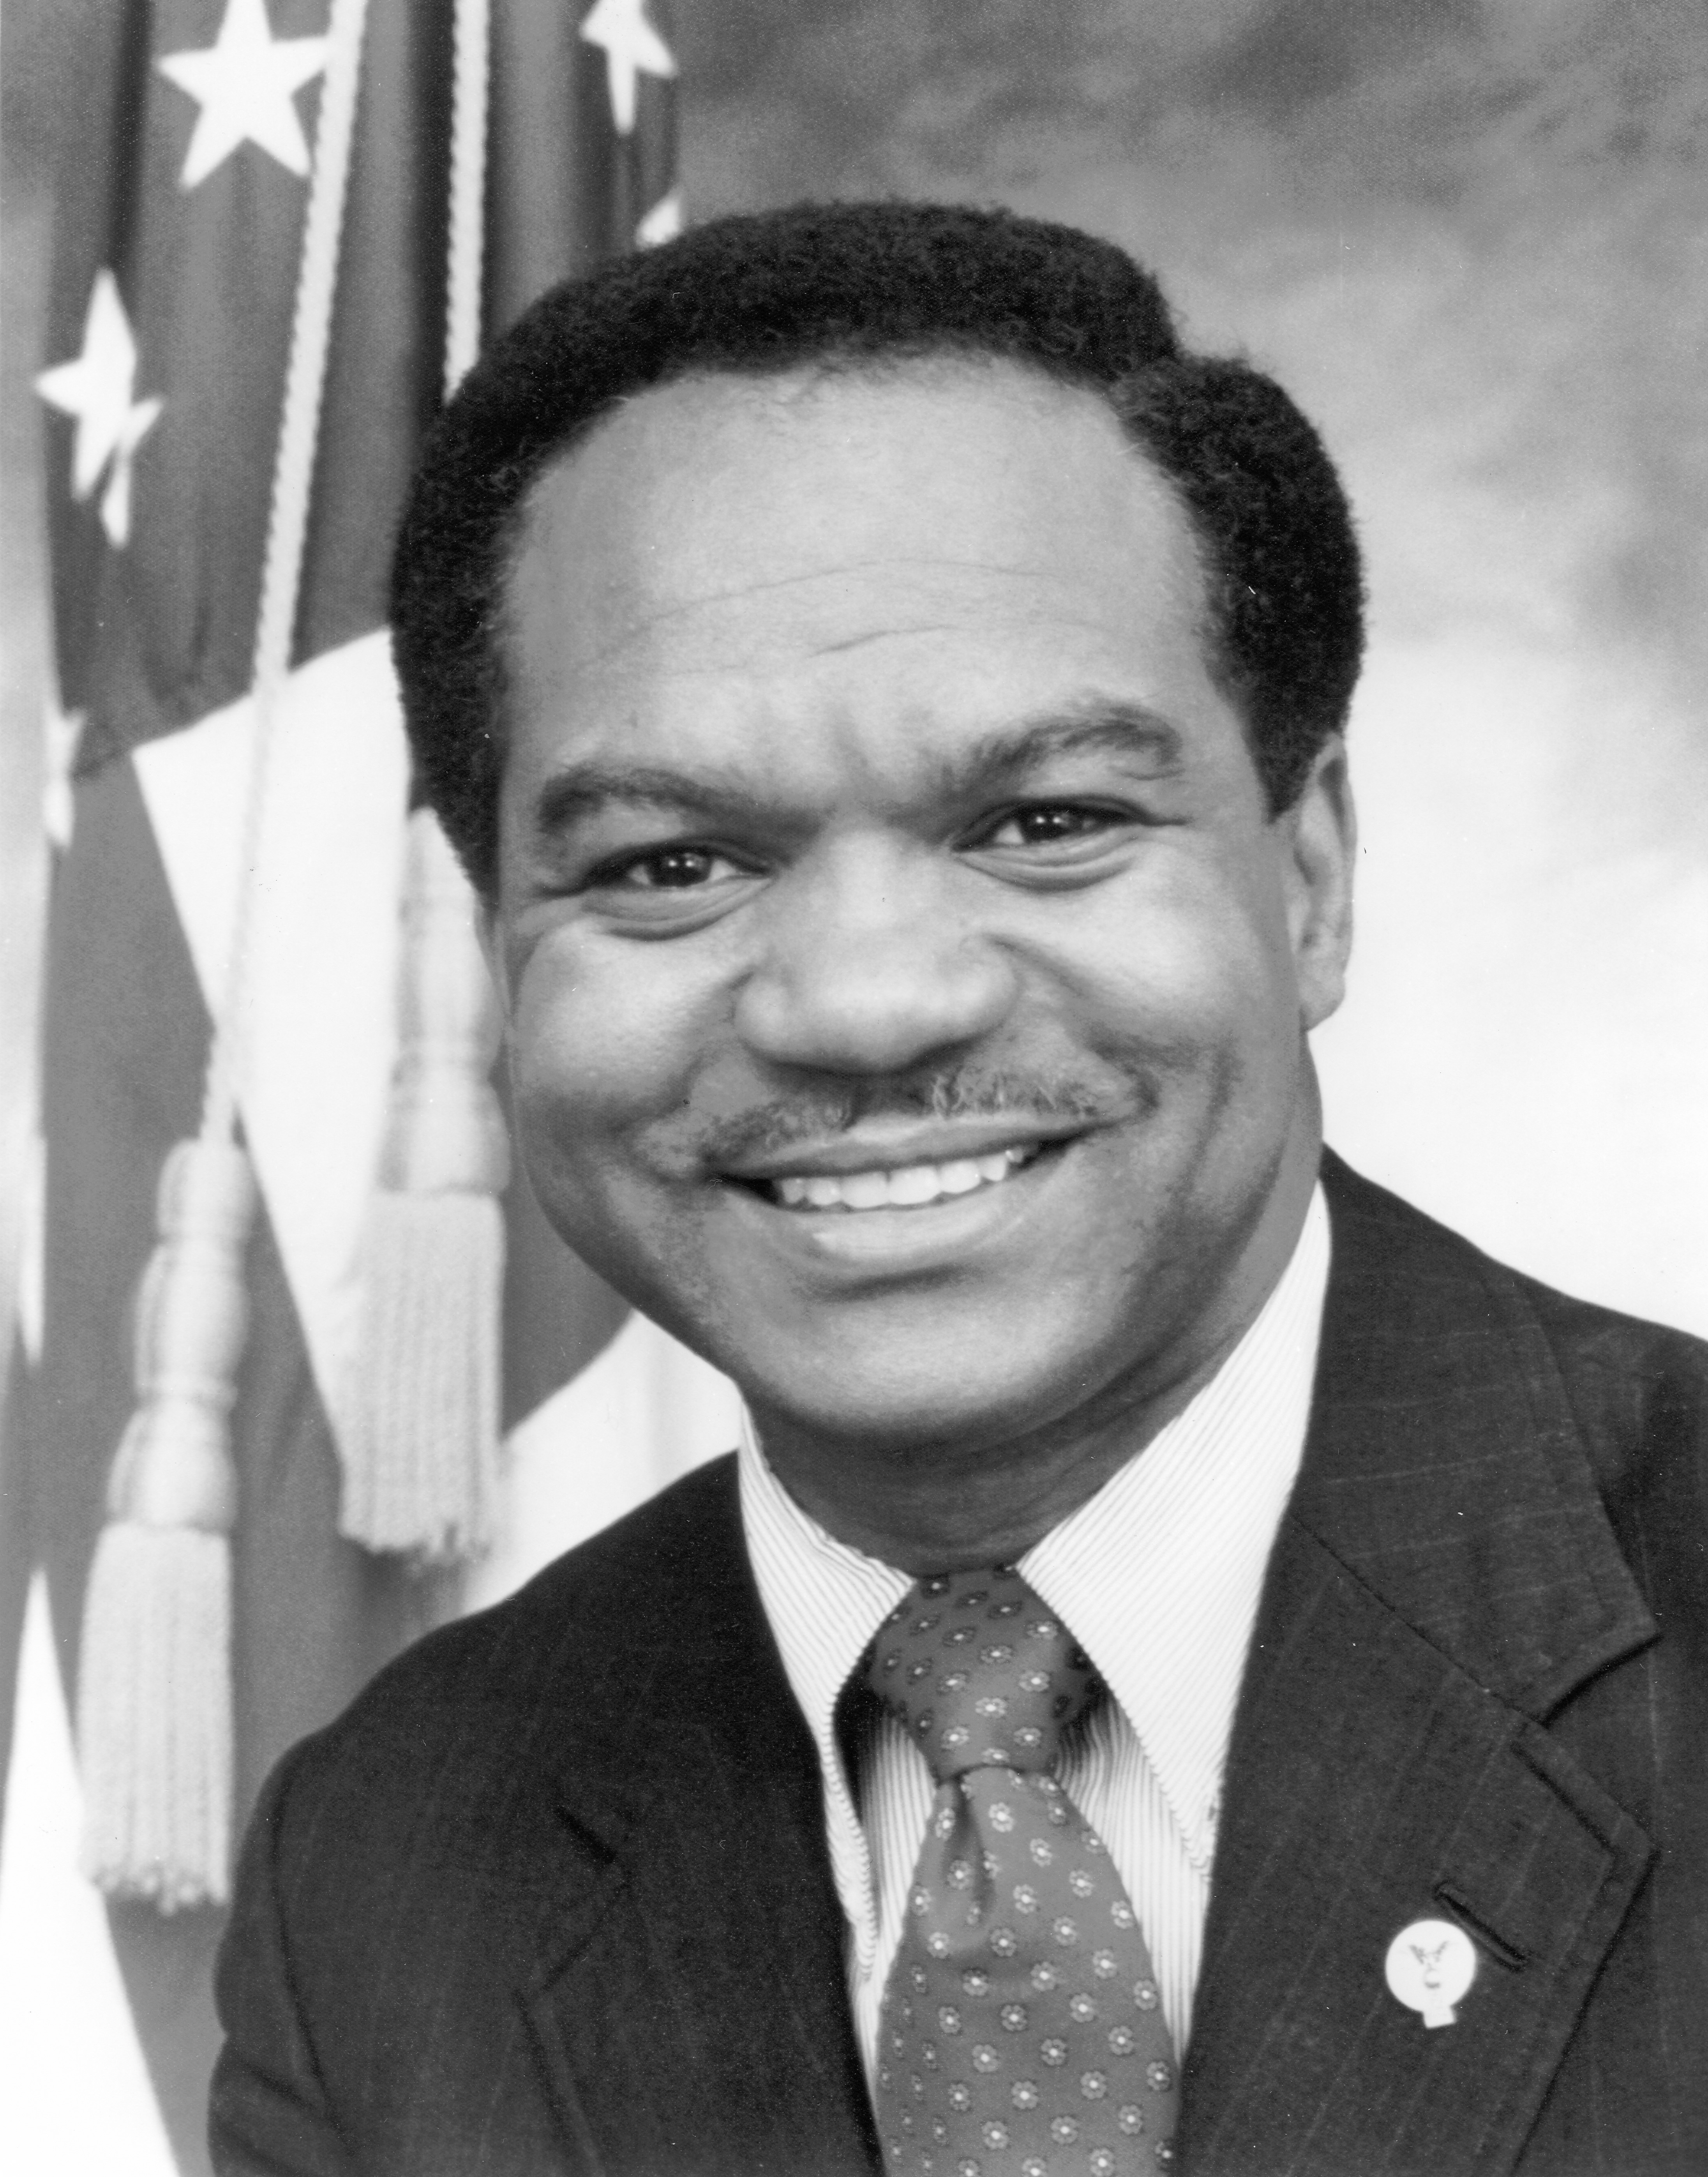 Little Known Black History Fact: Walter Fauntroy